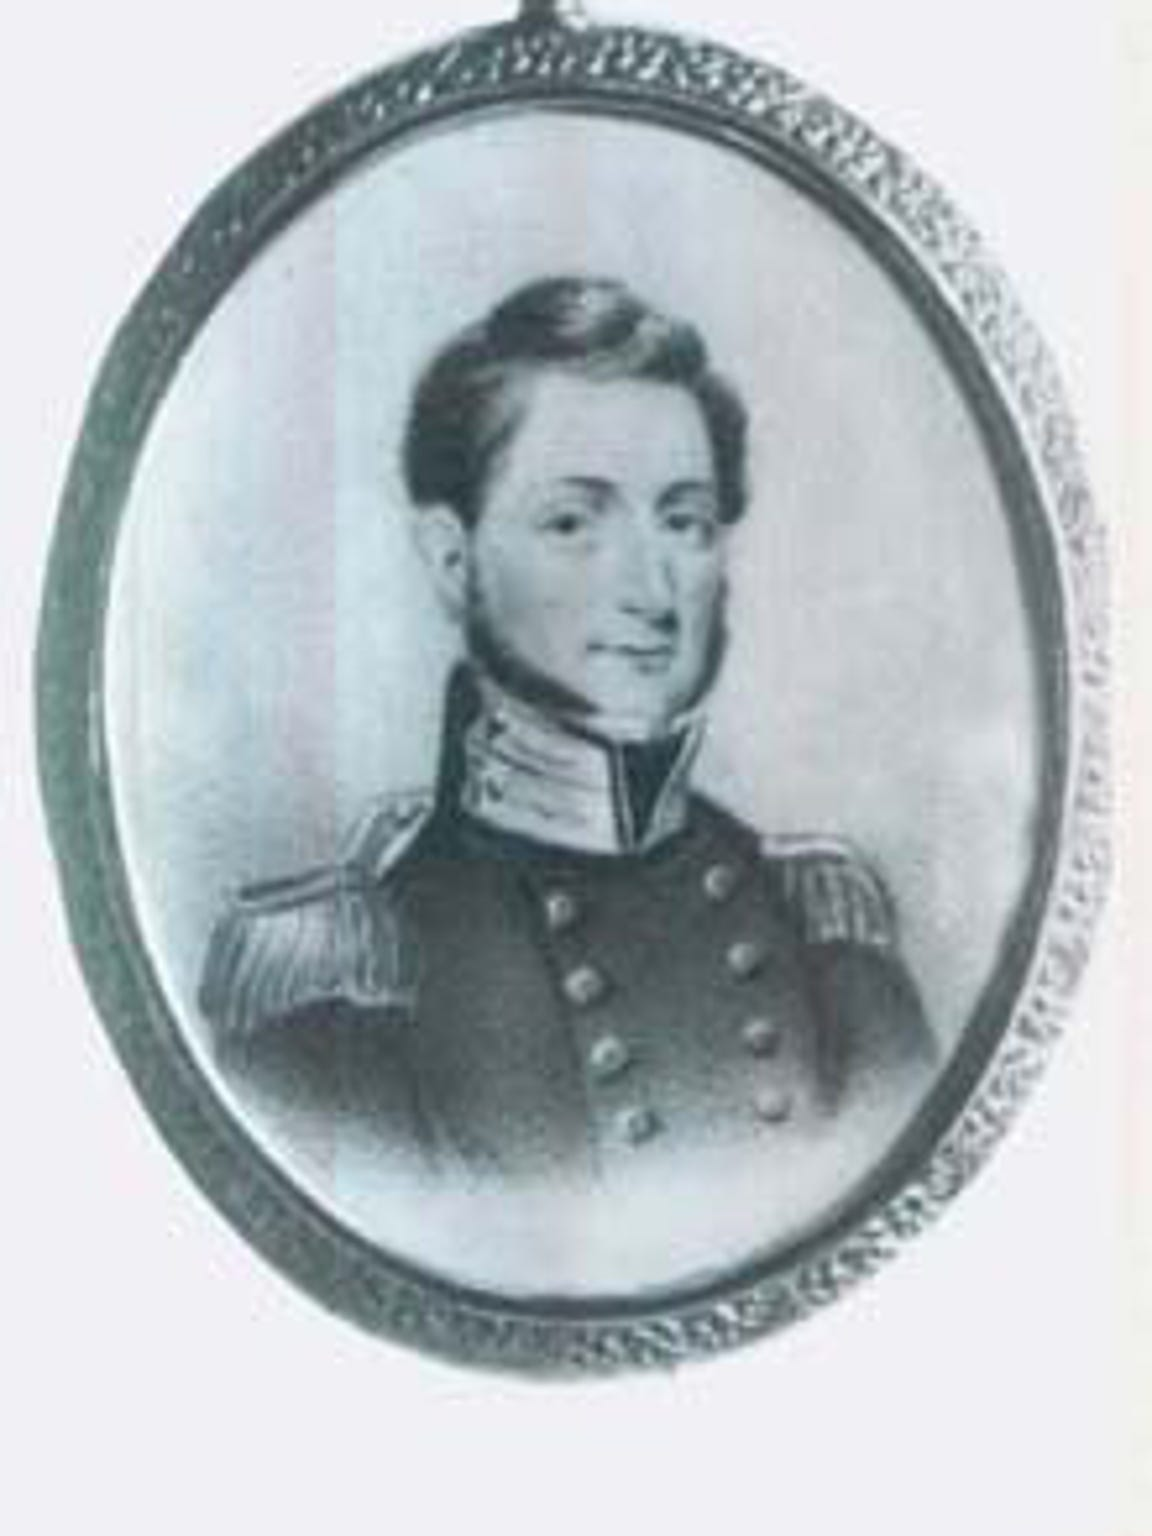 Forbes Britton, a young second lieutenant in the 7th Regiment of Infantry, settled in Corpus Christi and became a wealthy merchant and state senator. He died Feb. 14, 1861, on the eve of secession.